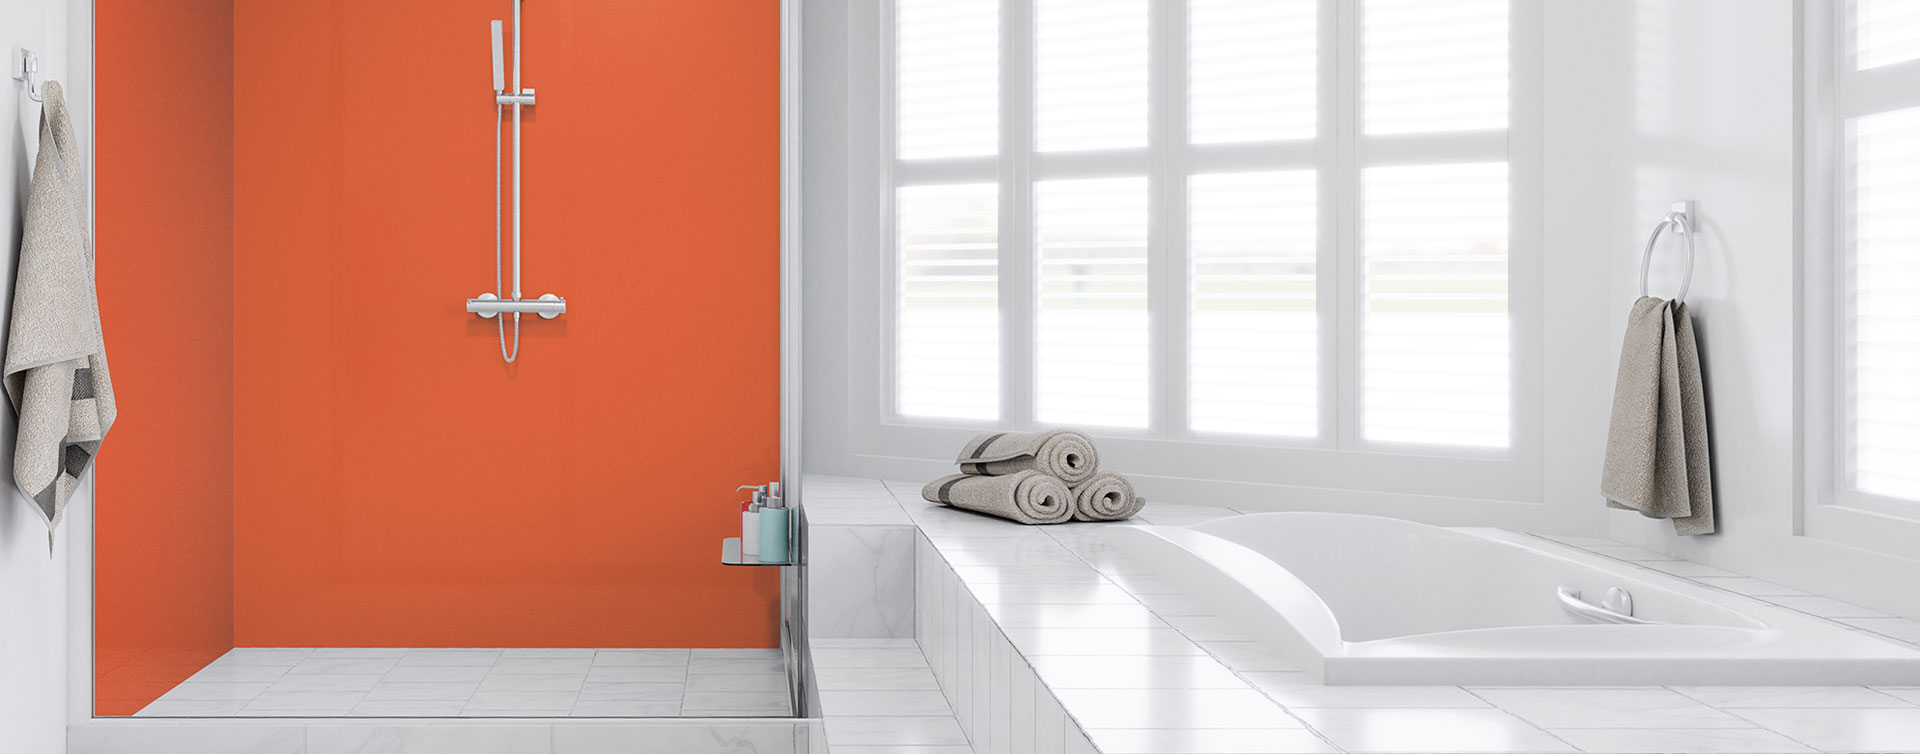 Fine Ative Bath Panels Pictures Inspiration - Bathroom with ...